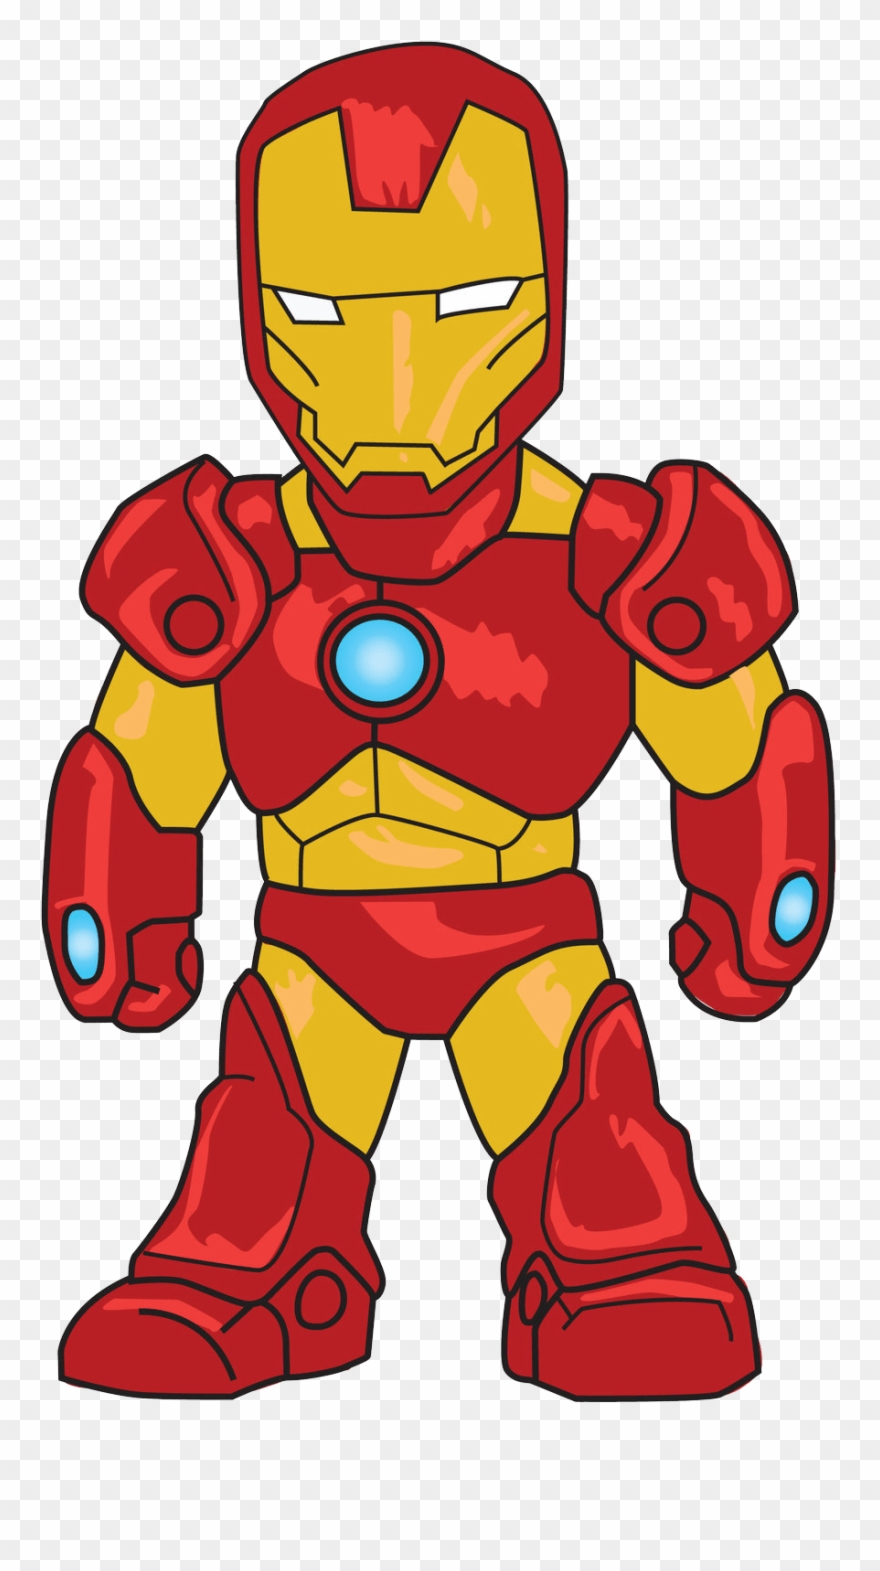 Ironman clipart png black and white Iron Man Clipart - Png Download (#762620) - PinClipart png black and white